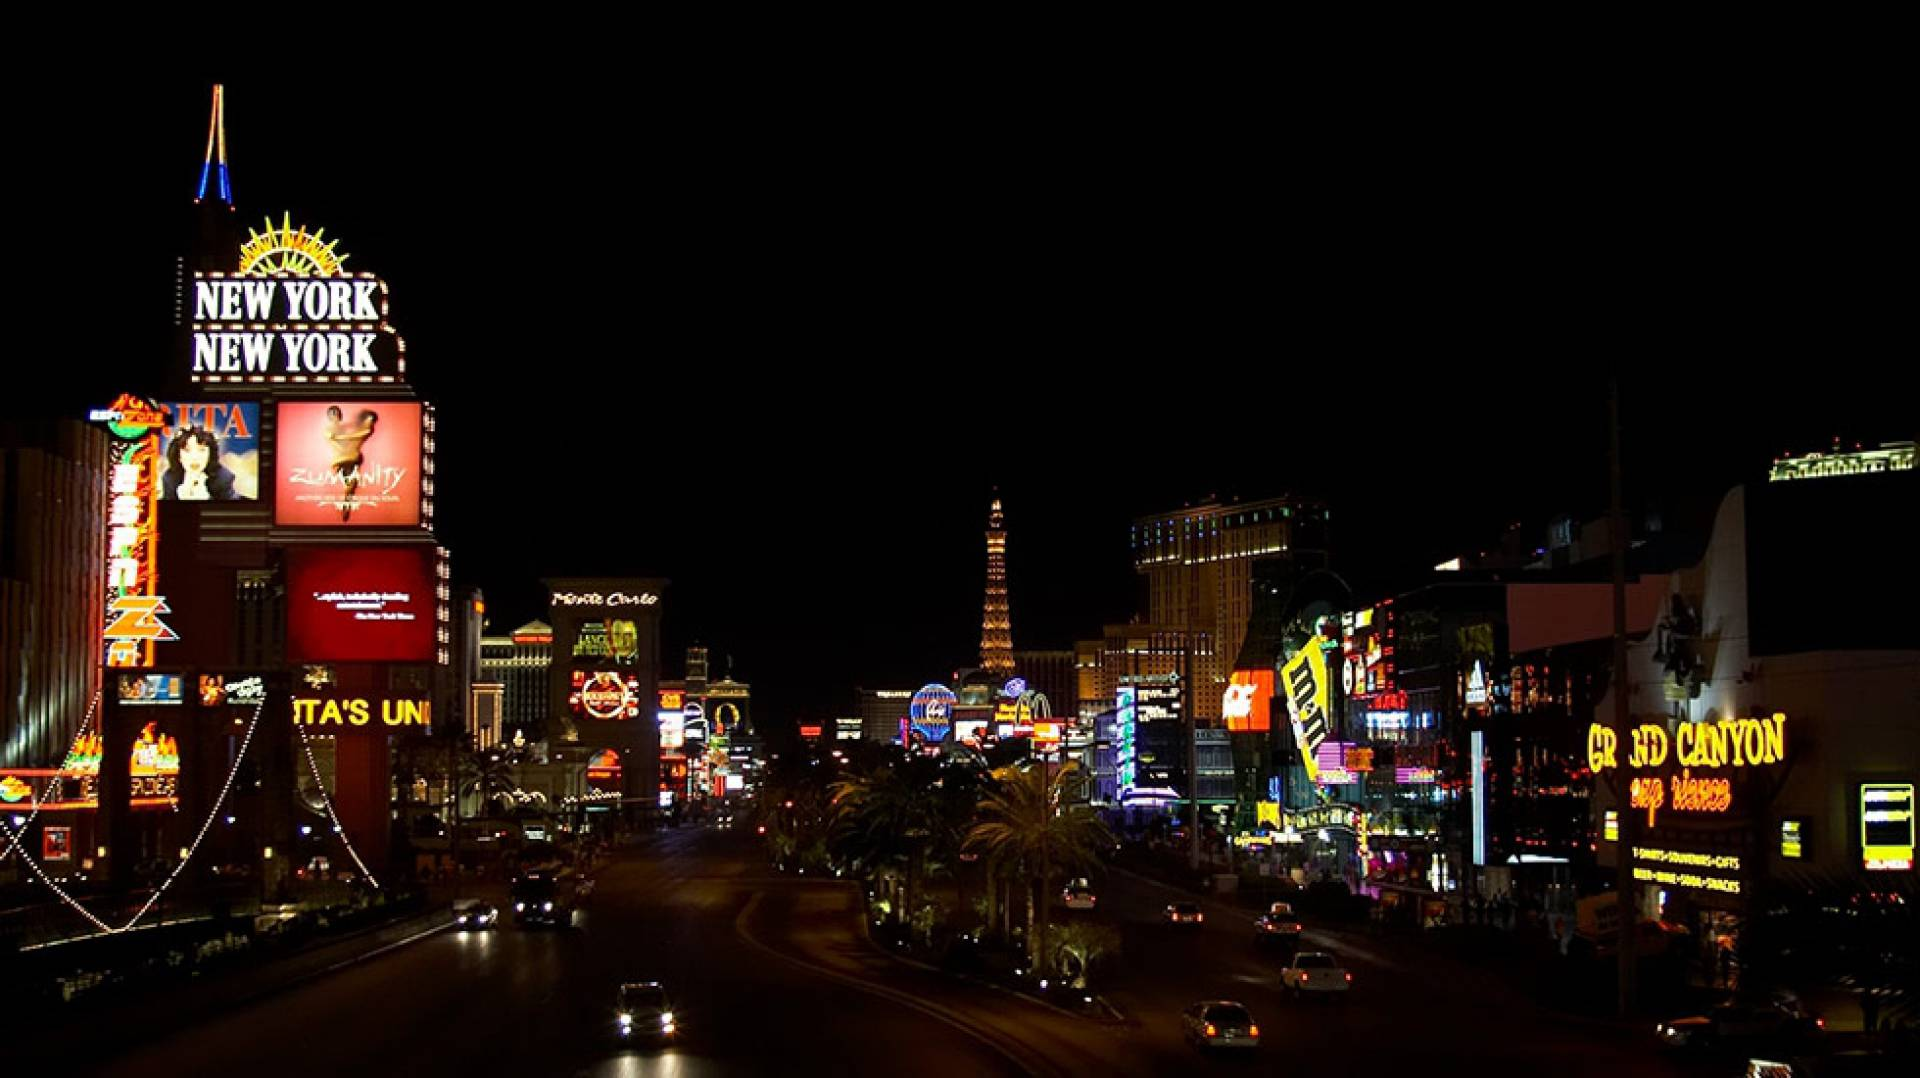 2005 - Las Vegas, NV, USA